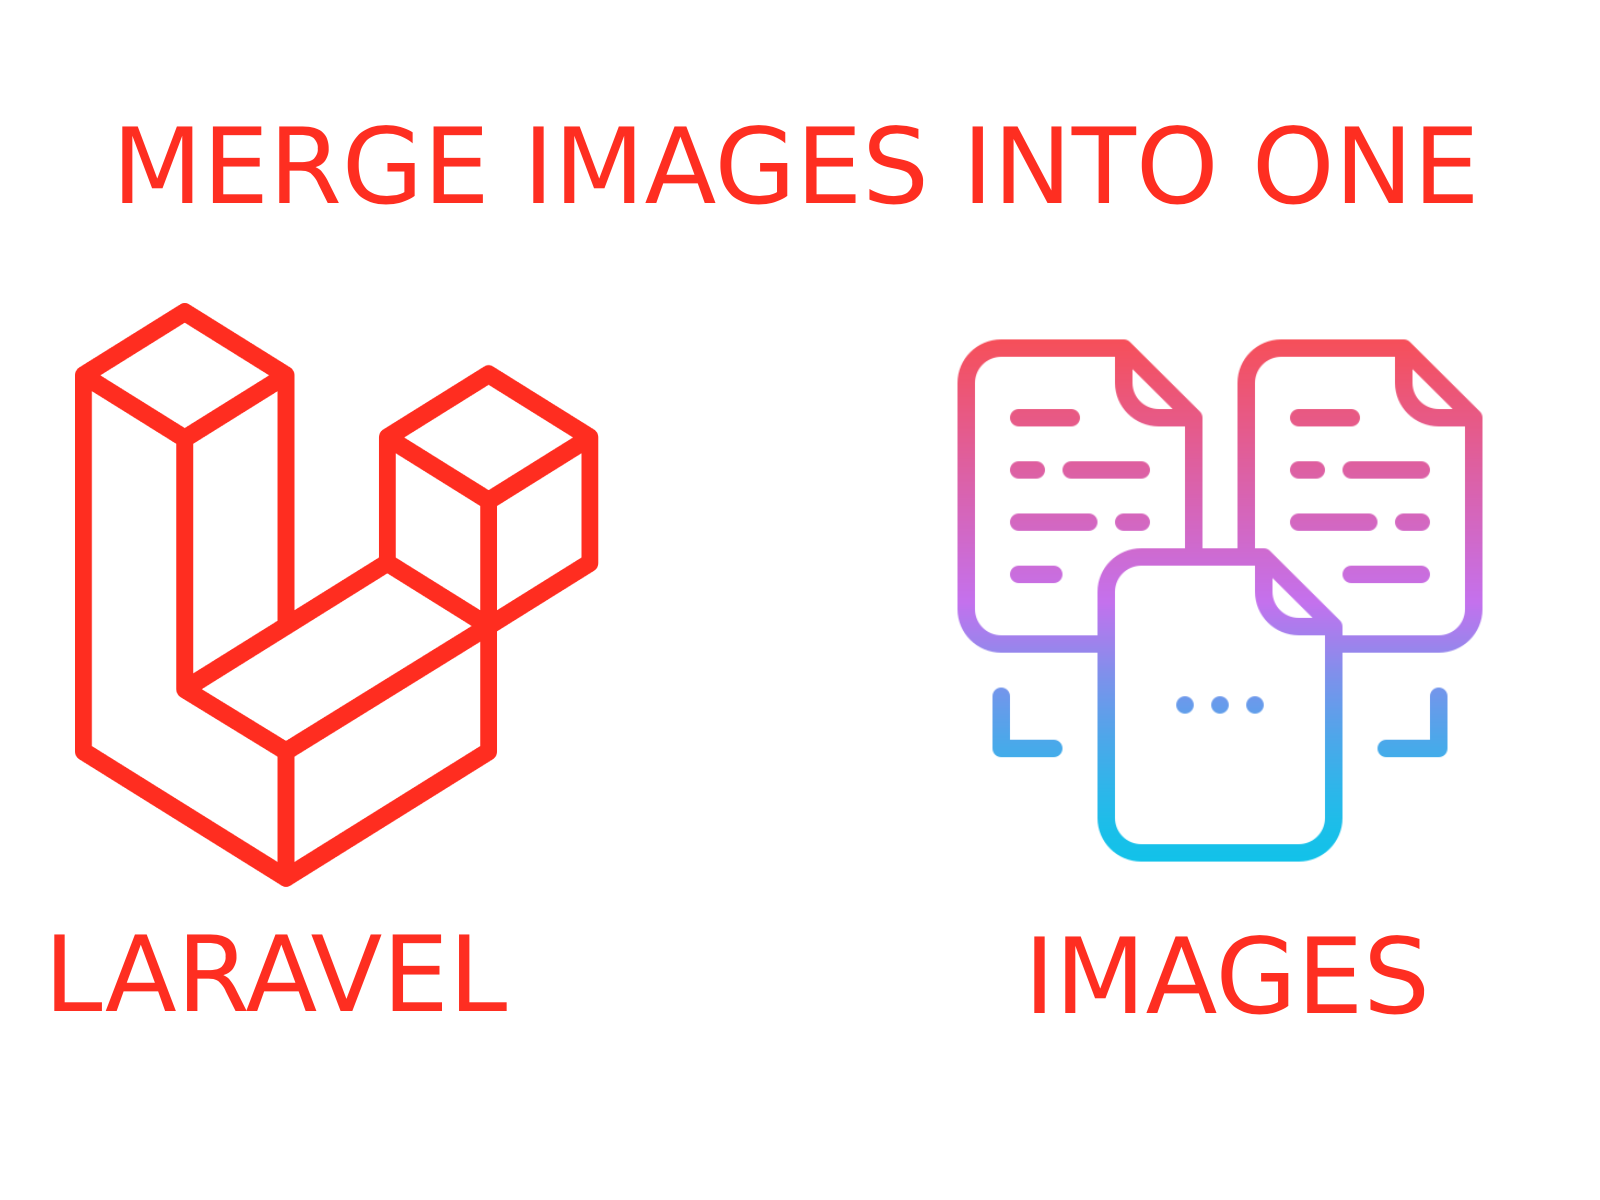 MERGE MULTIPLE IMAGES INTO ONE IN LARAVEL